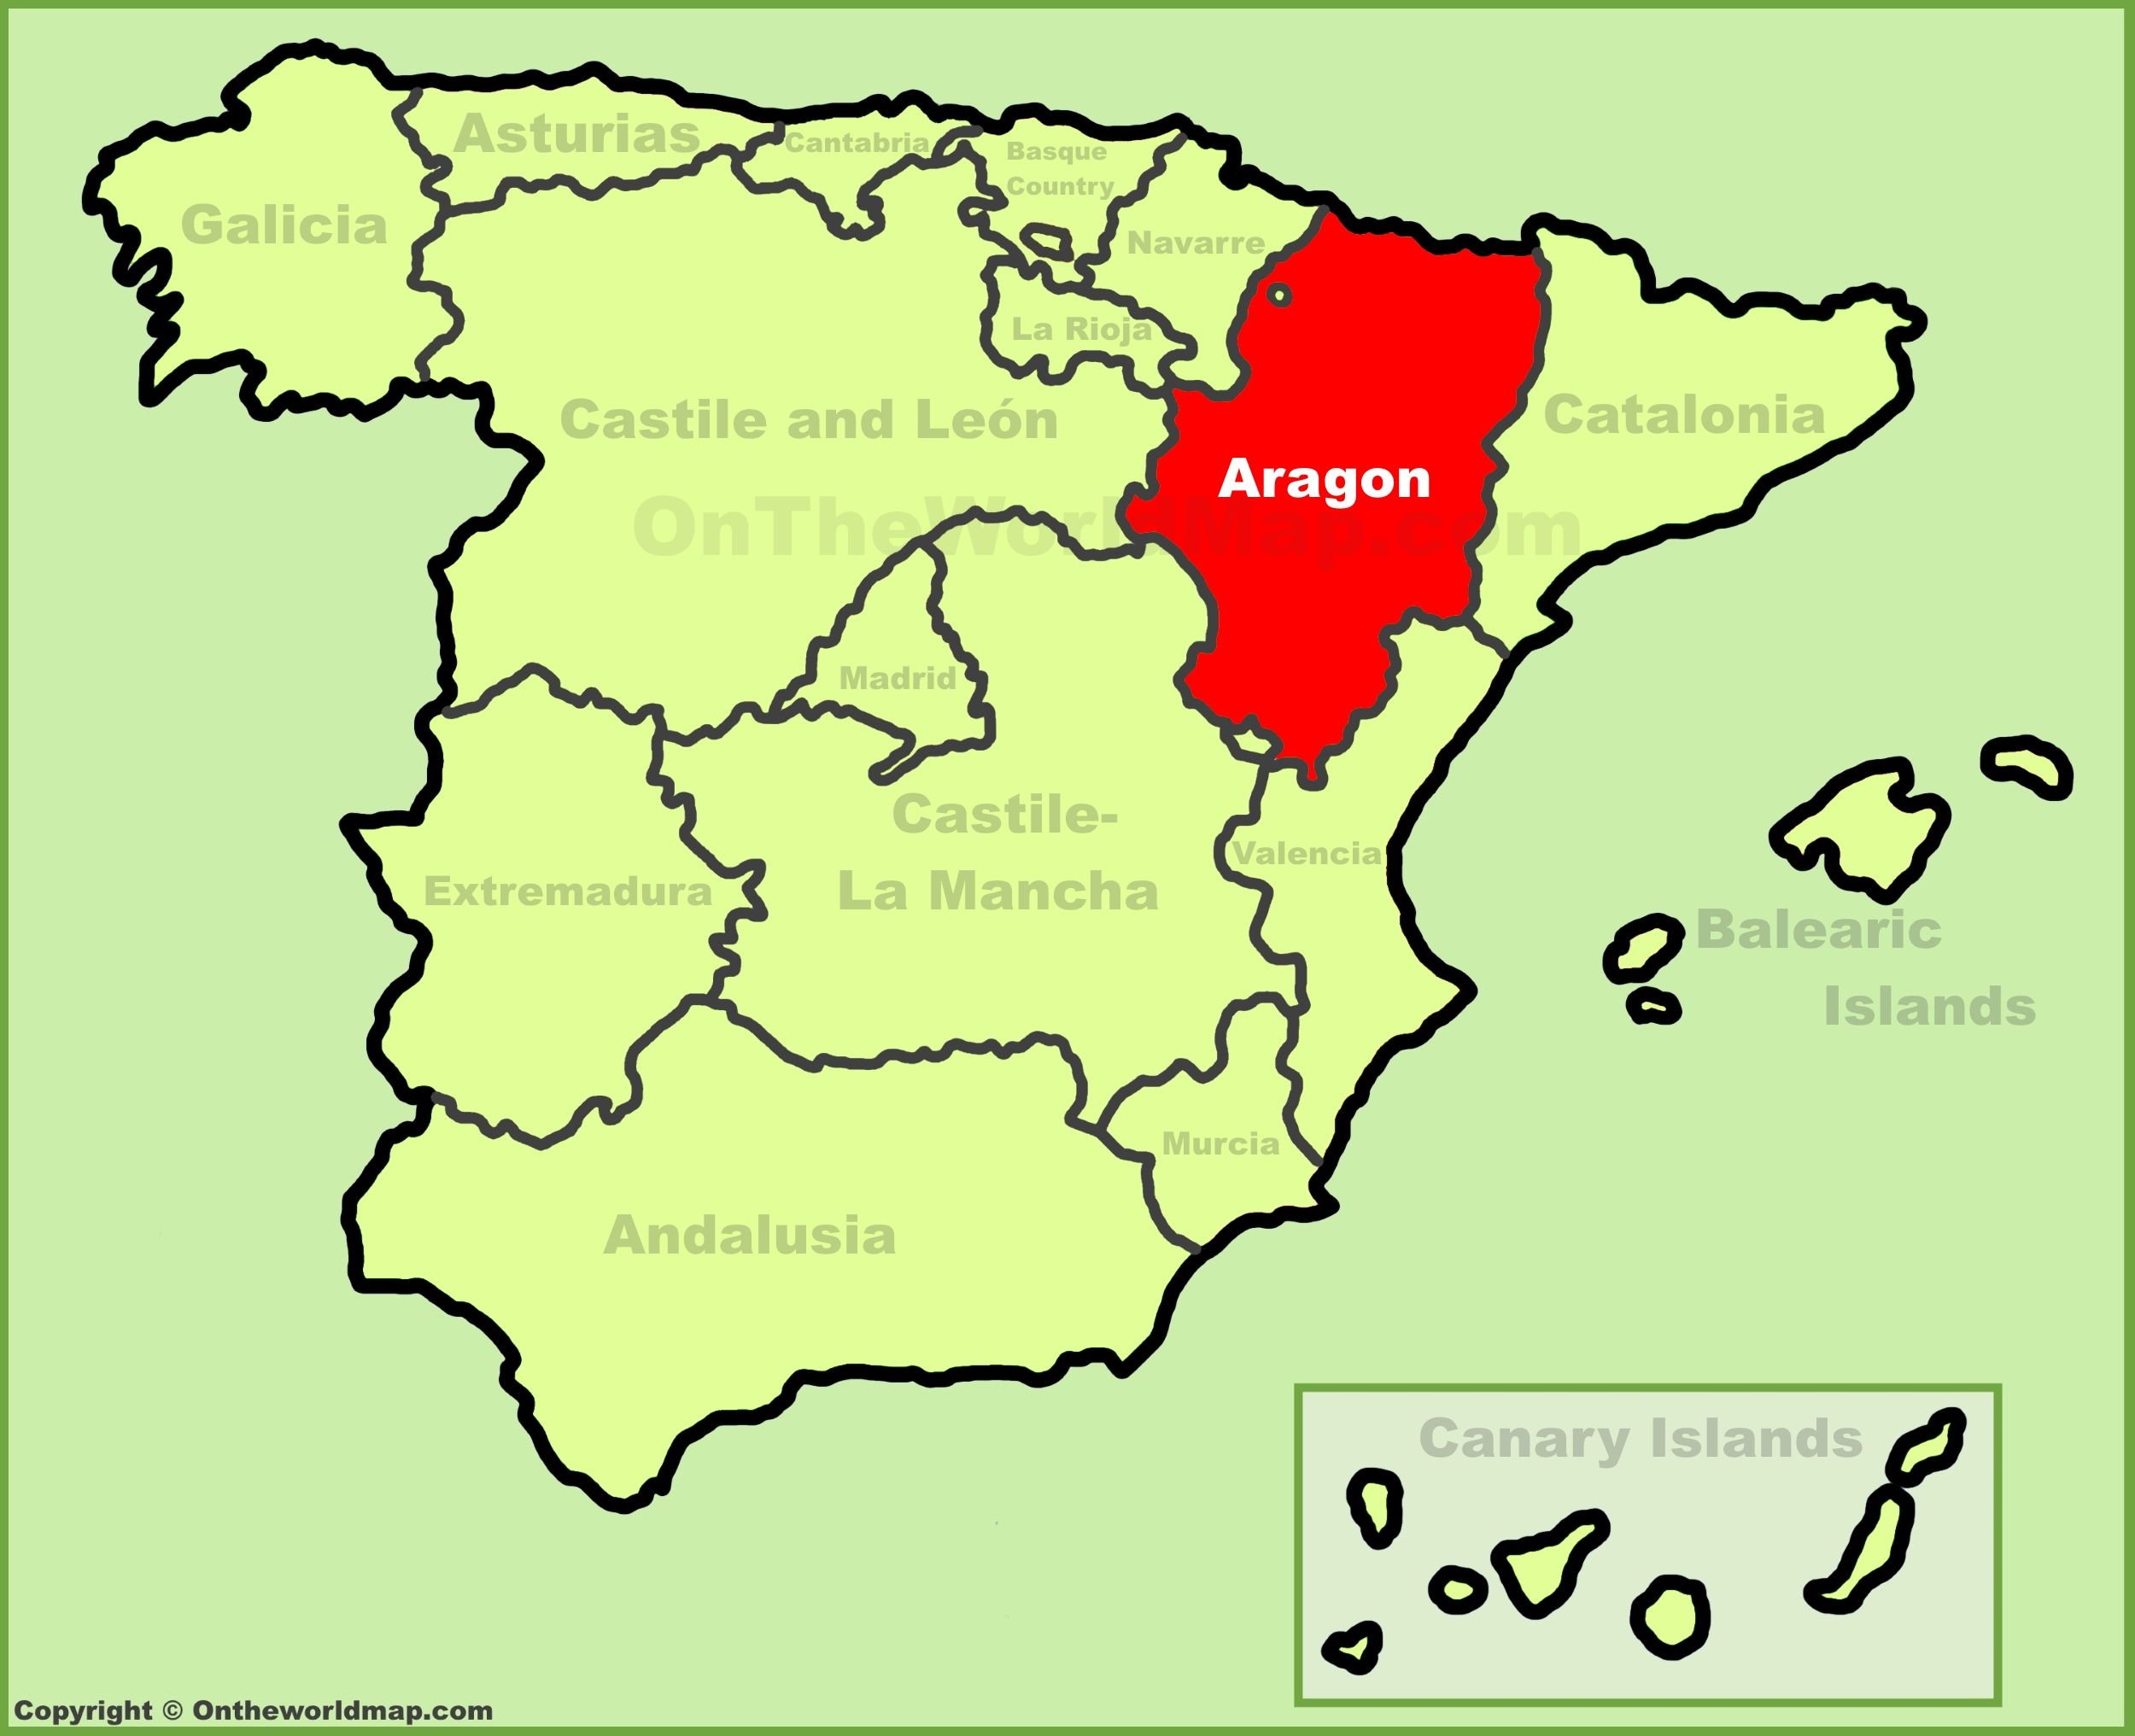 Aragon location on the Spain map